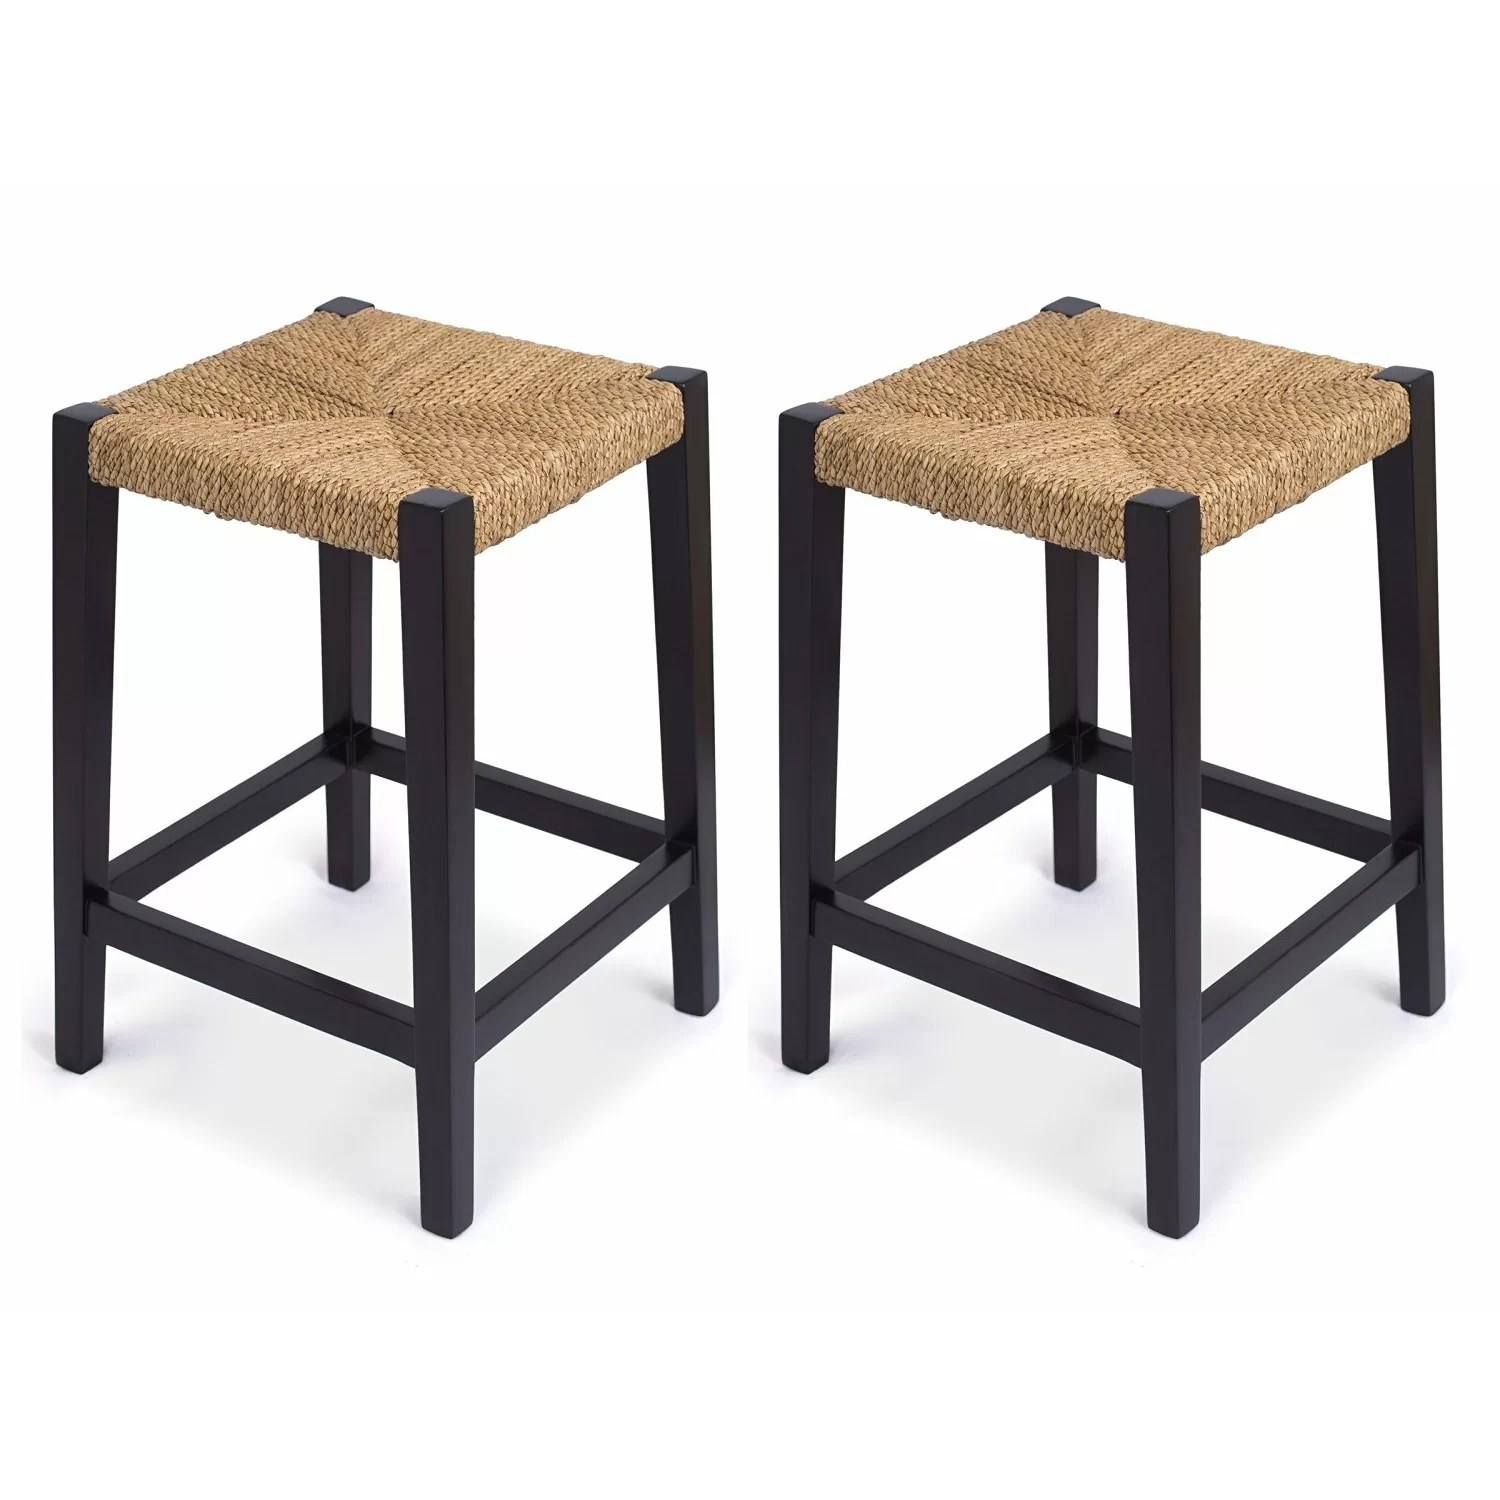 Counter Height Chairs Birdrock Home Rush Weave 24 Quot Counter Height Bar Stool